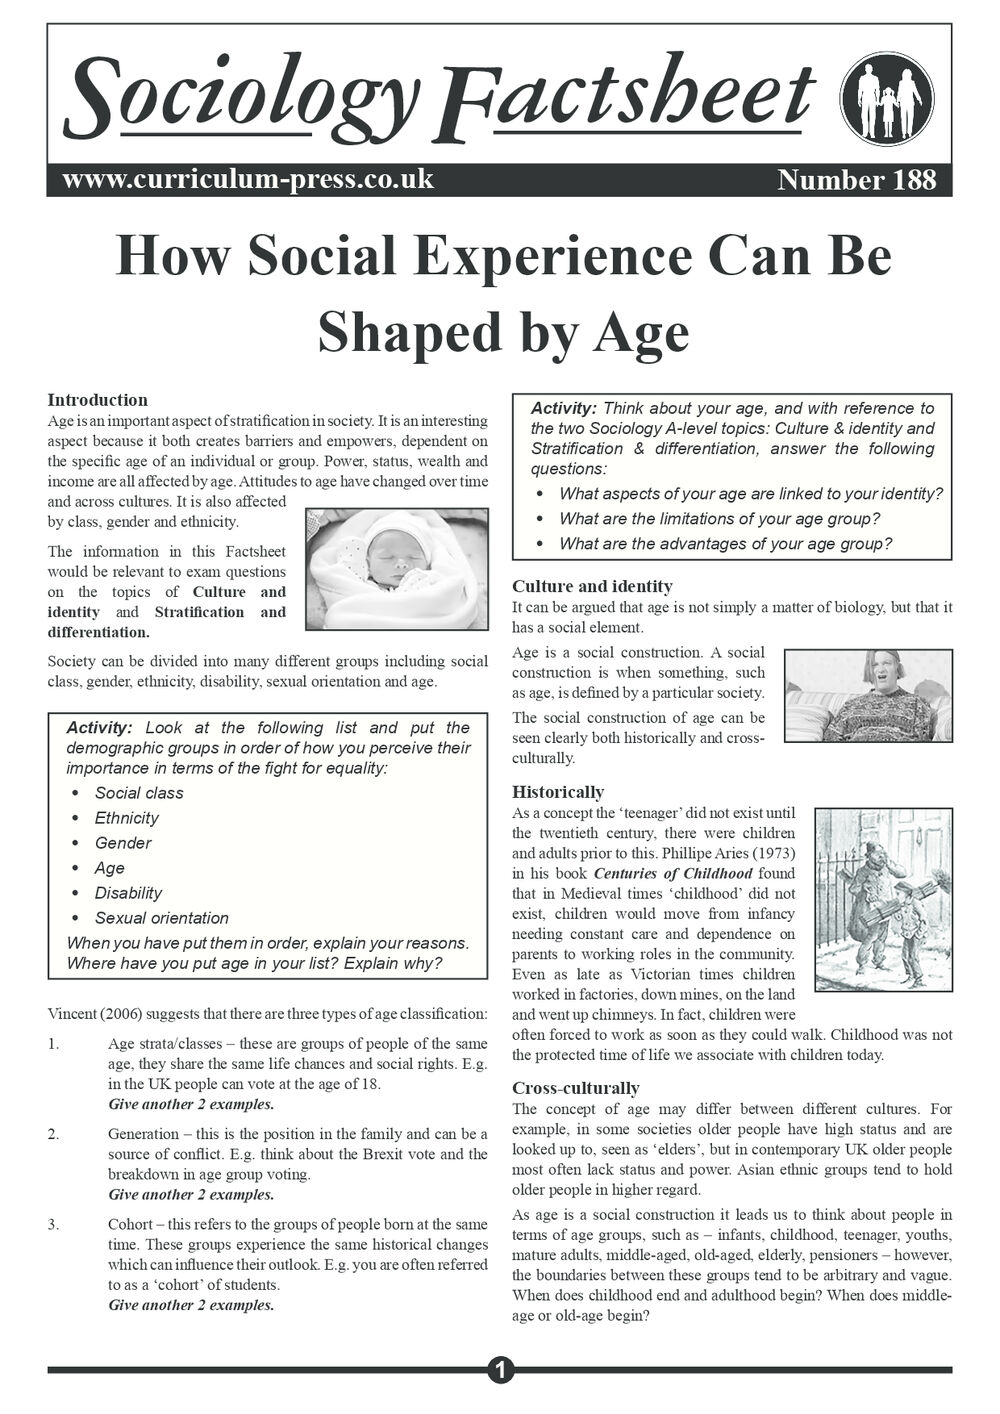 188 How Social Experience Can Be Shaped By Age